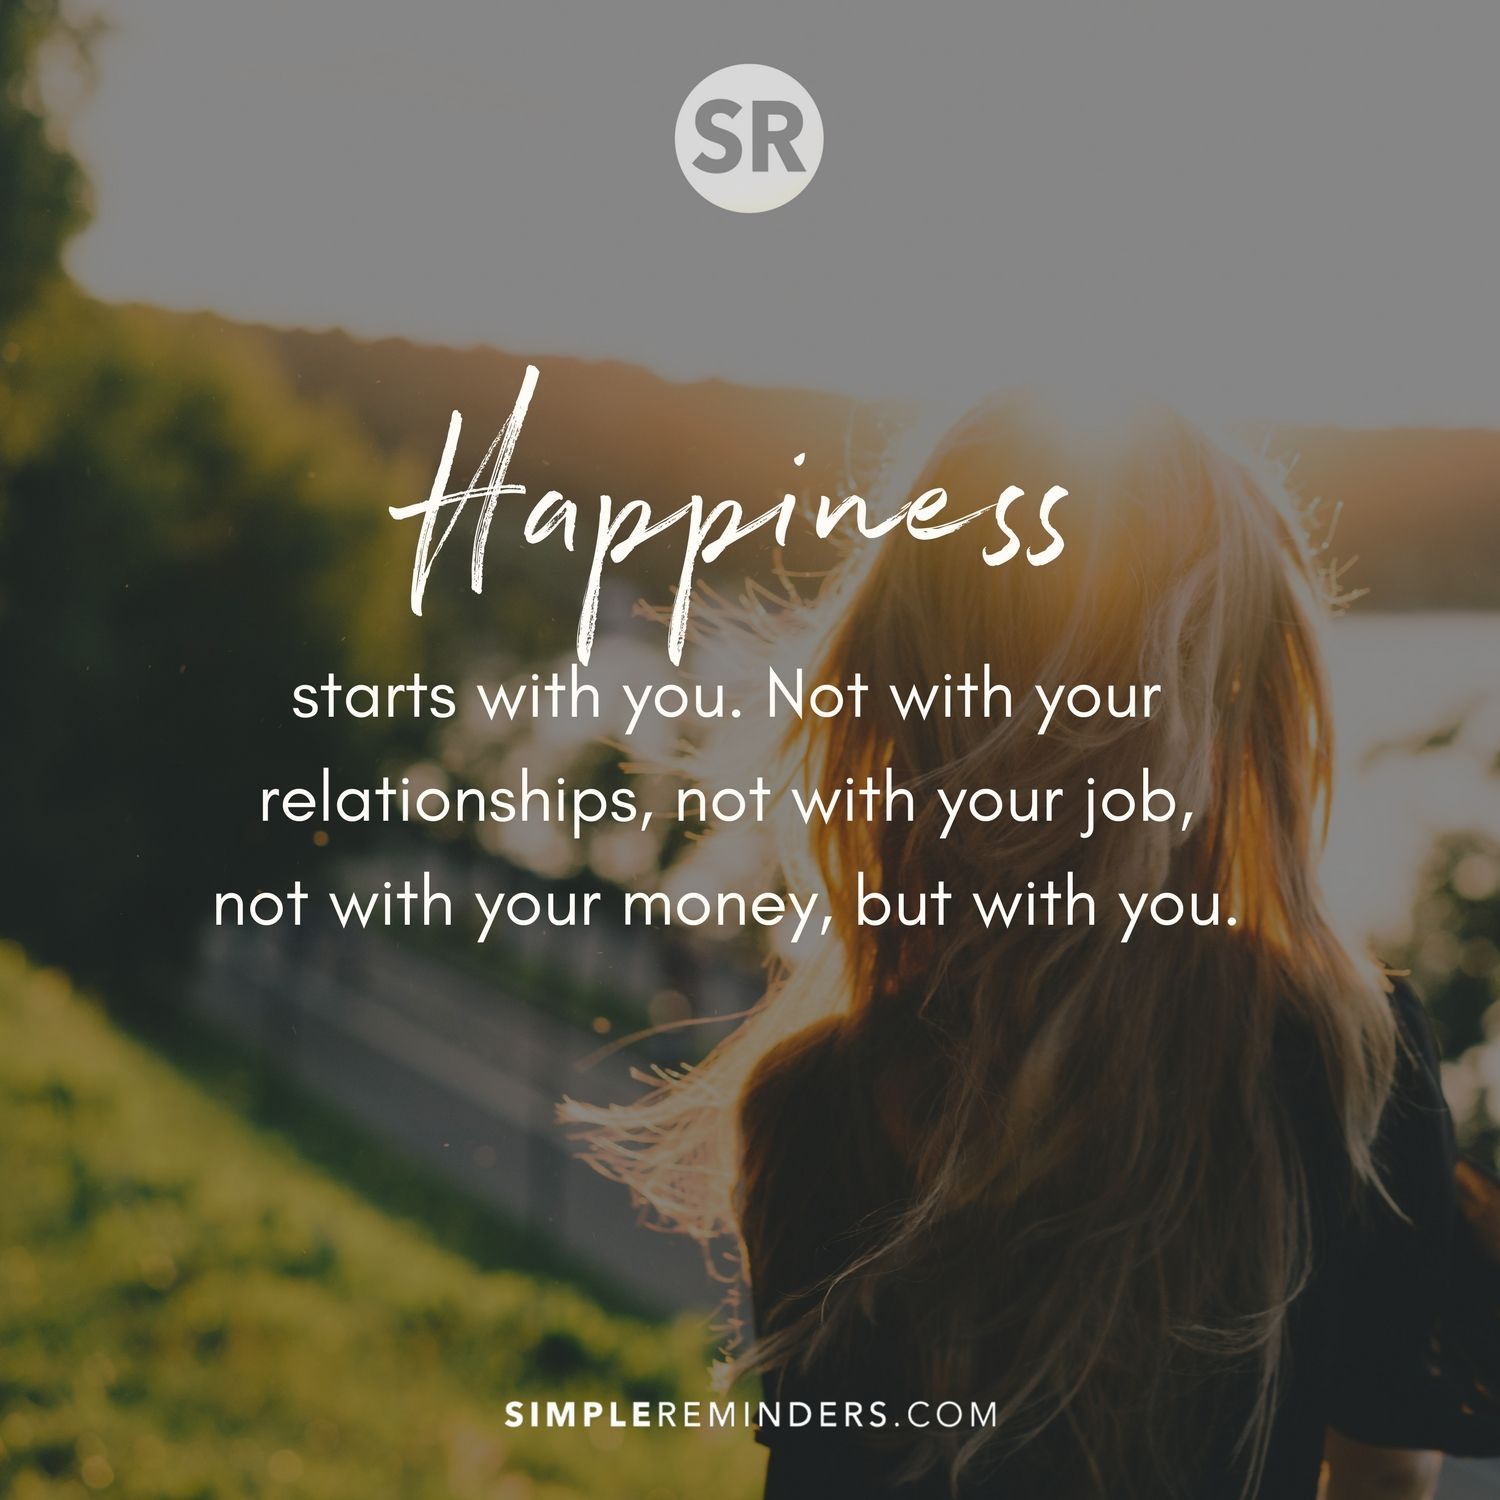 unknown author happiness starts you 2w7y - Simple